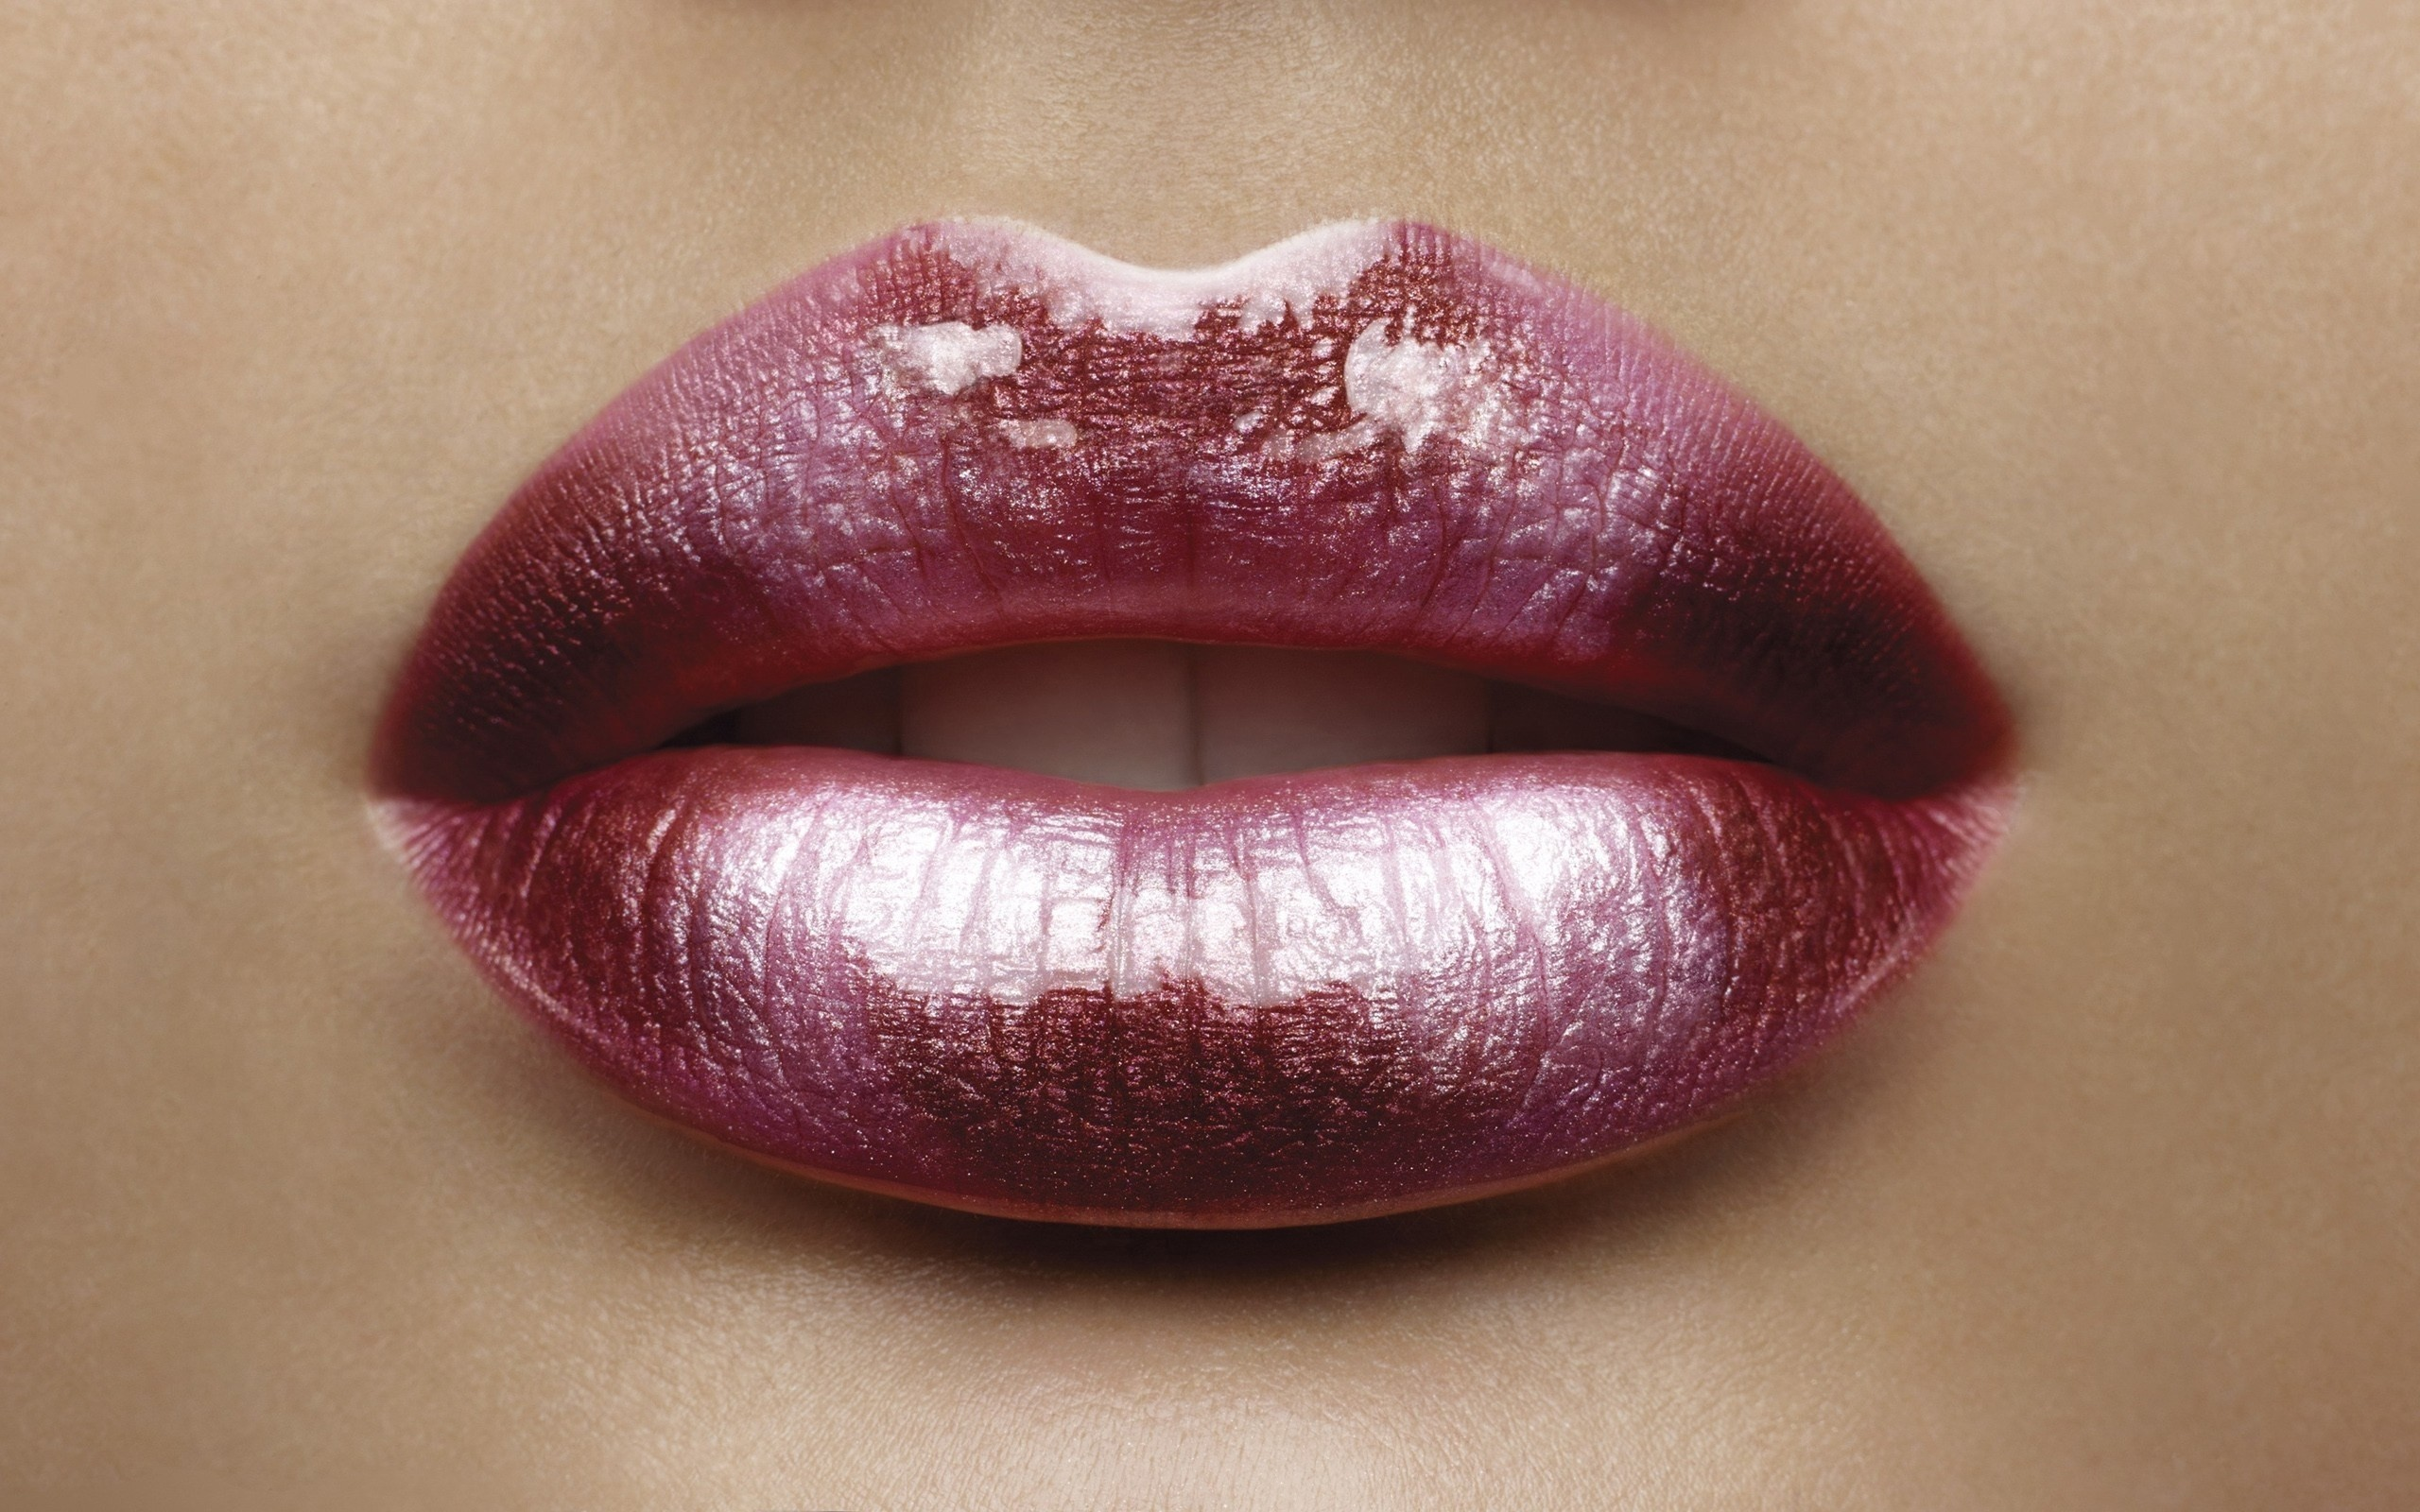 Res: 2560x1600, Lips Girl #6927866